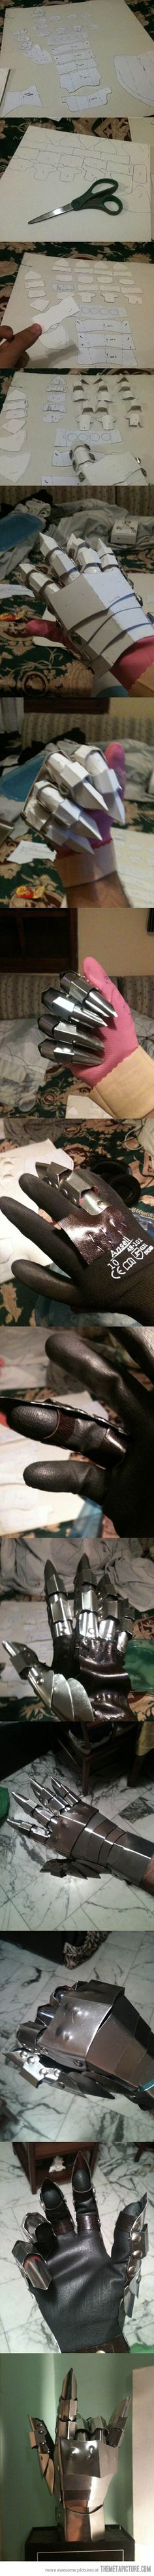 Making Sauron's hand…